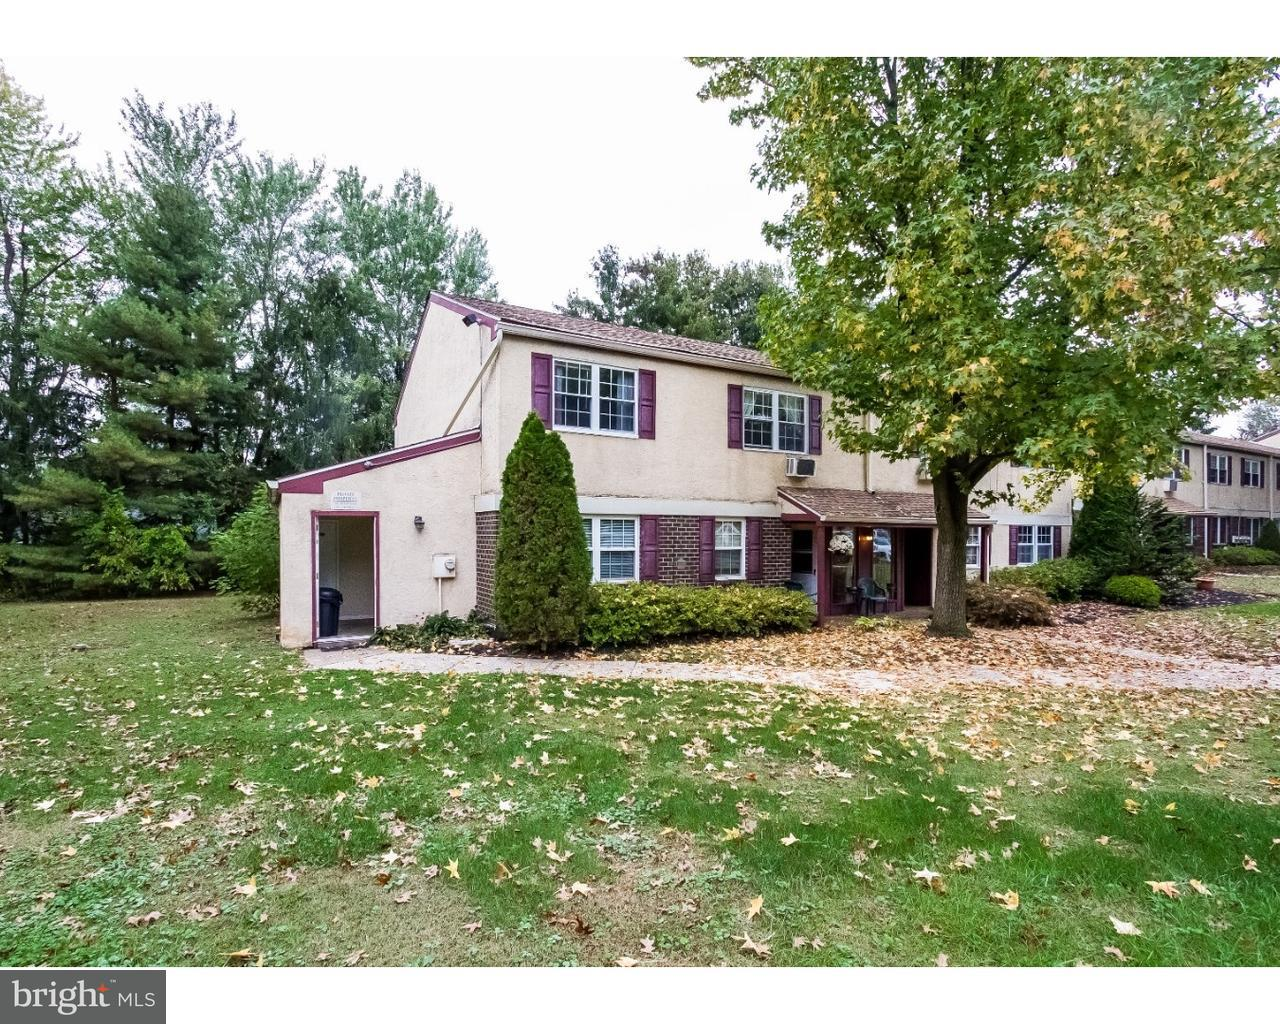 178 ELEPHANT RD #B24, DUBLIN - Listed at $129,999,